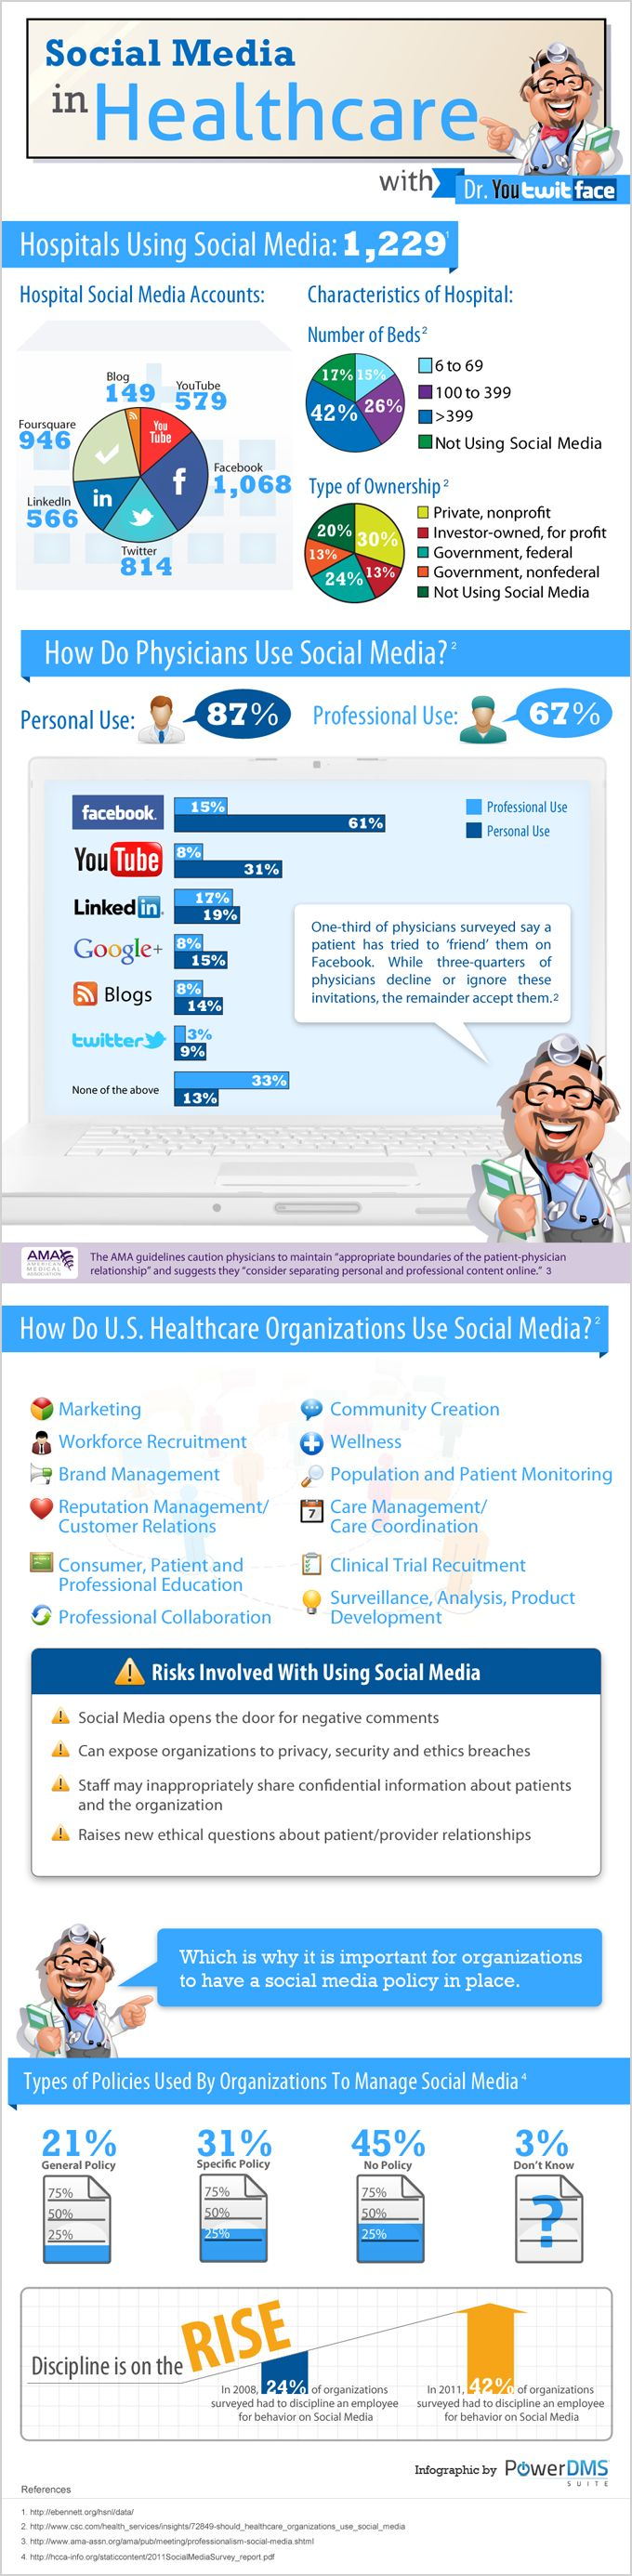 How #Healthcare is Using Social Media INFOGRAPHIC  #SocialMedia